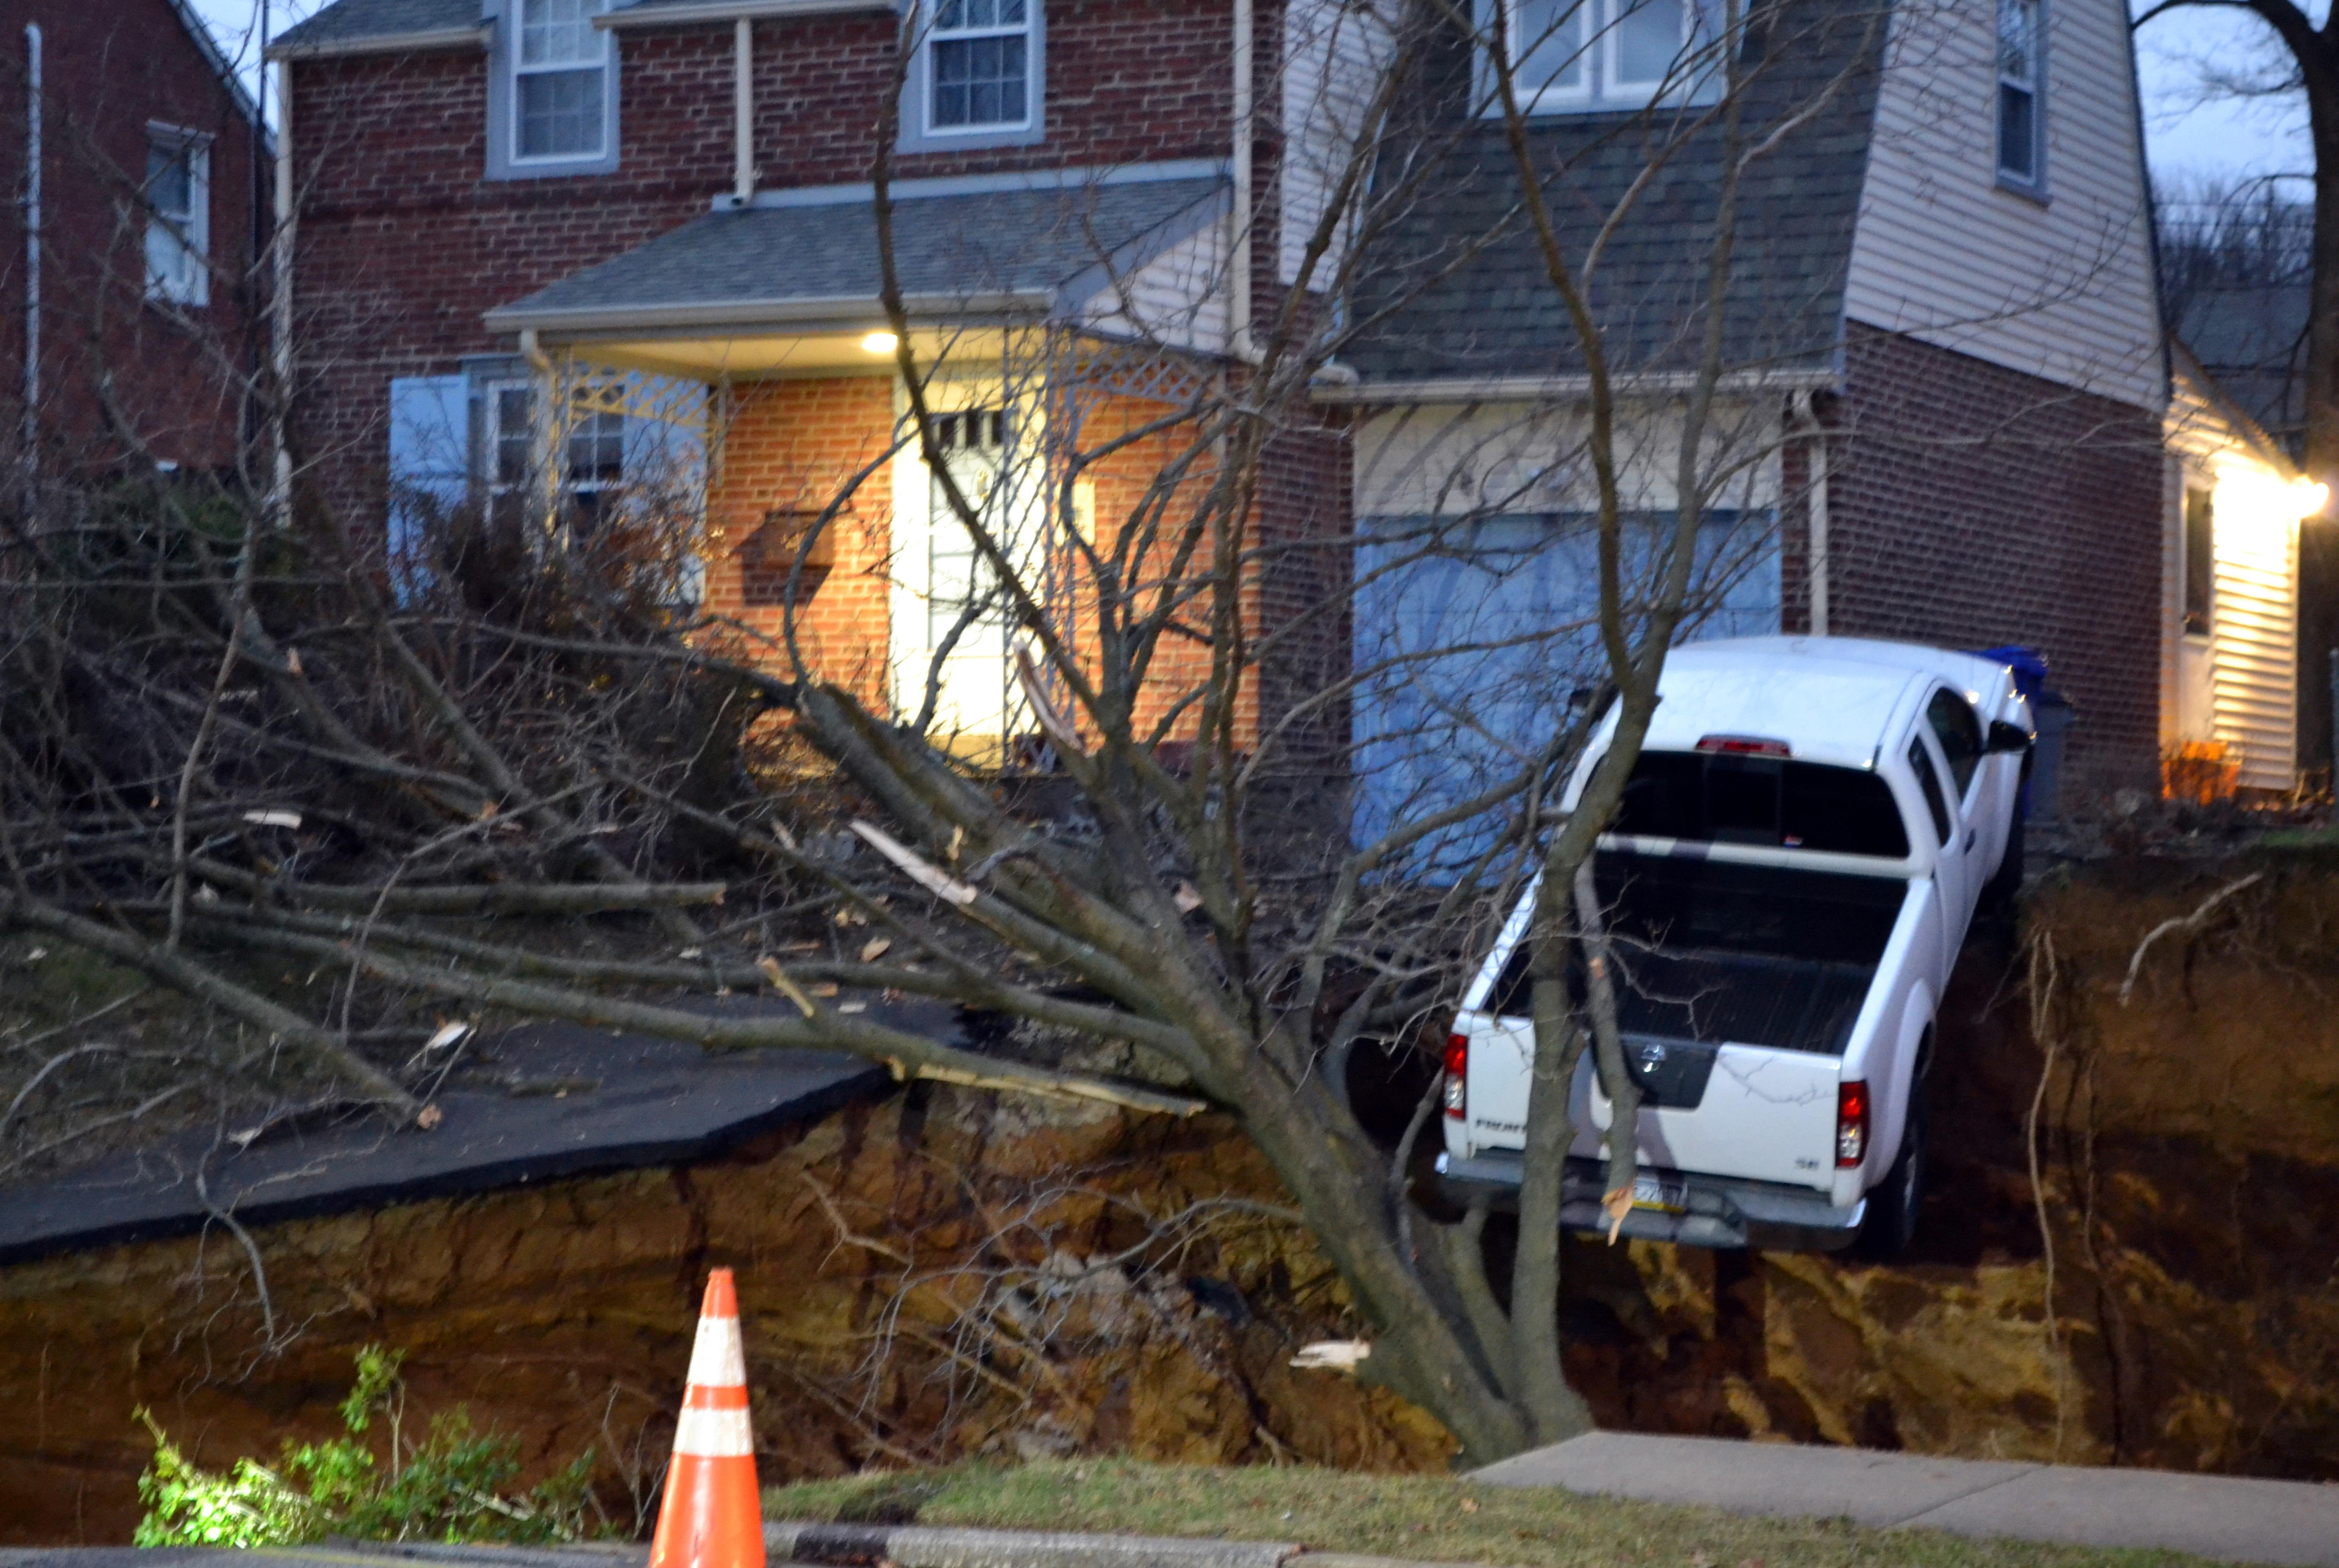 Sinkhole Swallows Yards, Threatens Pickup In Philadelphia